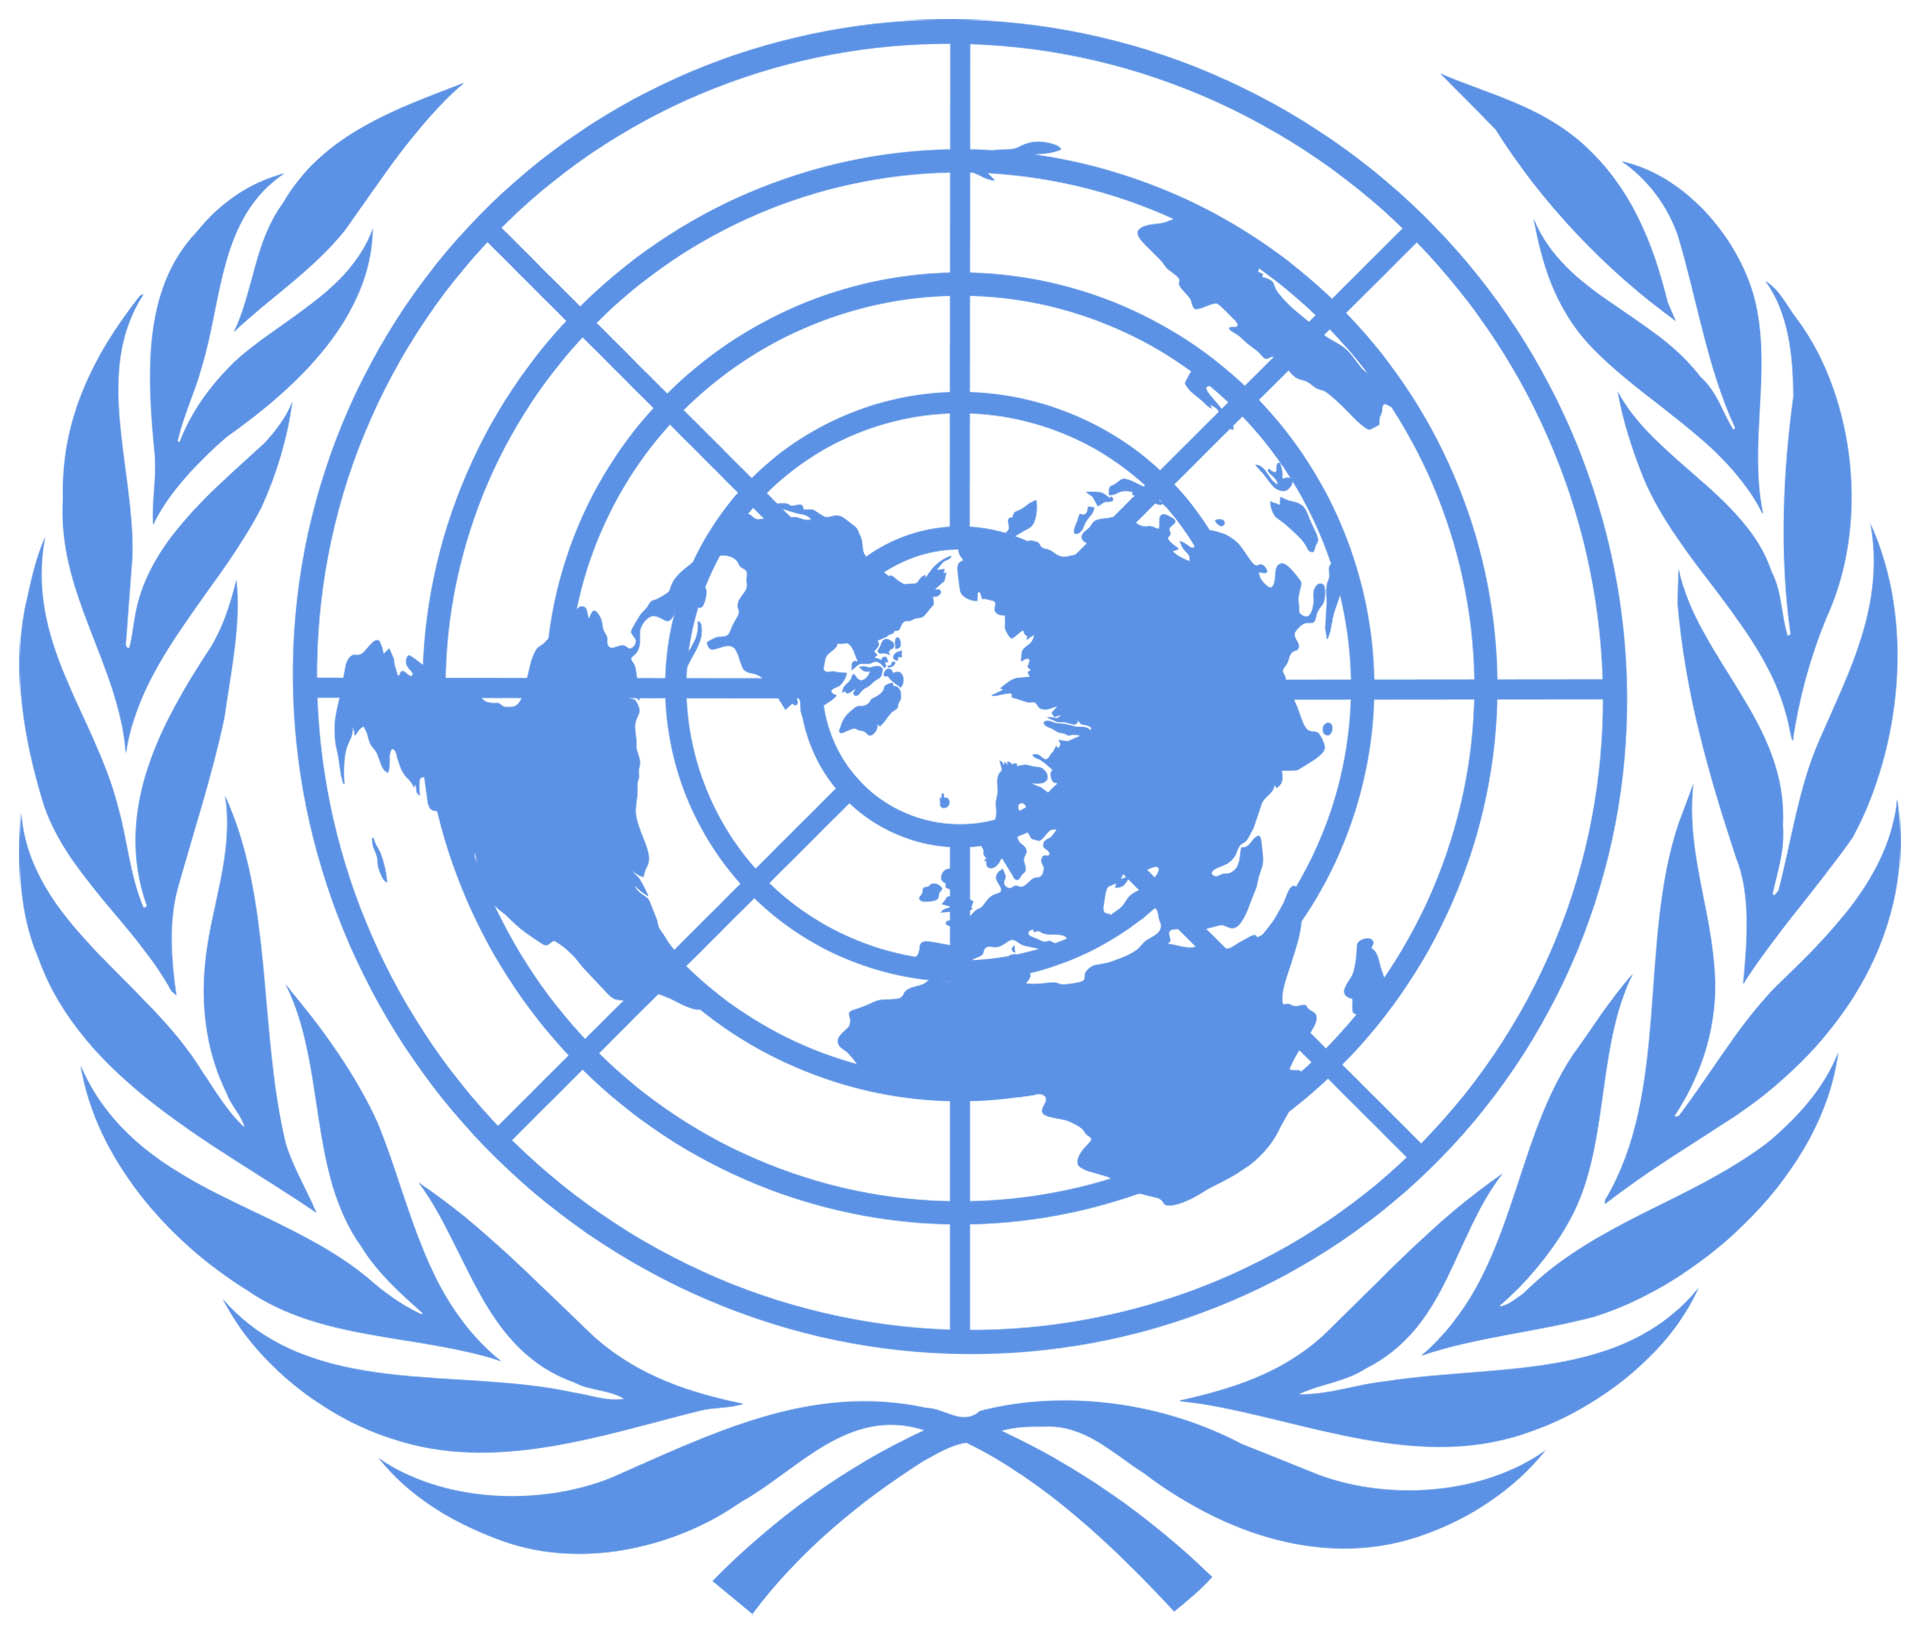 We are peacefully and nonviolently retiring the United Nations and all nation states. Those were coercive taxation authorities. Those monetary systems were corrupt by definition.  Coercion is ethically and morally wrong. The whole banking model was an organized slavery model by bankers. That was slavery. They were raping the Earth. We got rid of them. Their authority is null and void. No more taxes. No more sovereign debt. No more debt, period. We fired all the governments and all the banks. This planet was severely mismanaged. We peacefully and nonviolently took out the management. We will immediately transition to a 100% green economy without economic limitations. All green alternatives are free to the consumers, paid for by the free and real time completely virtual central world bank. We addressed climate change by virtualizing the whole global economic system. This gives us an immediate money-no-object funding model for all things green. Work is optional. All citizens are retired homeowners with free universal health care with any doctor anywhere and a lifetime Basic Income Guarantee (BIG). Think BIG.